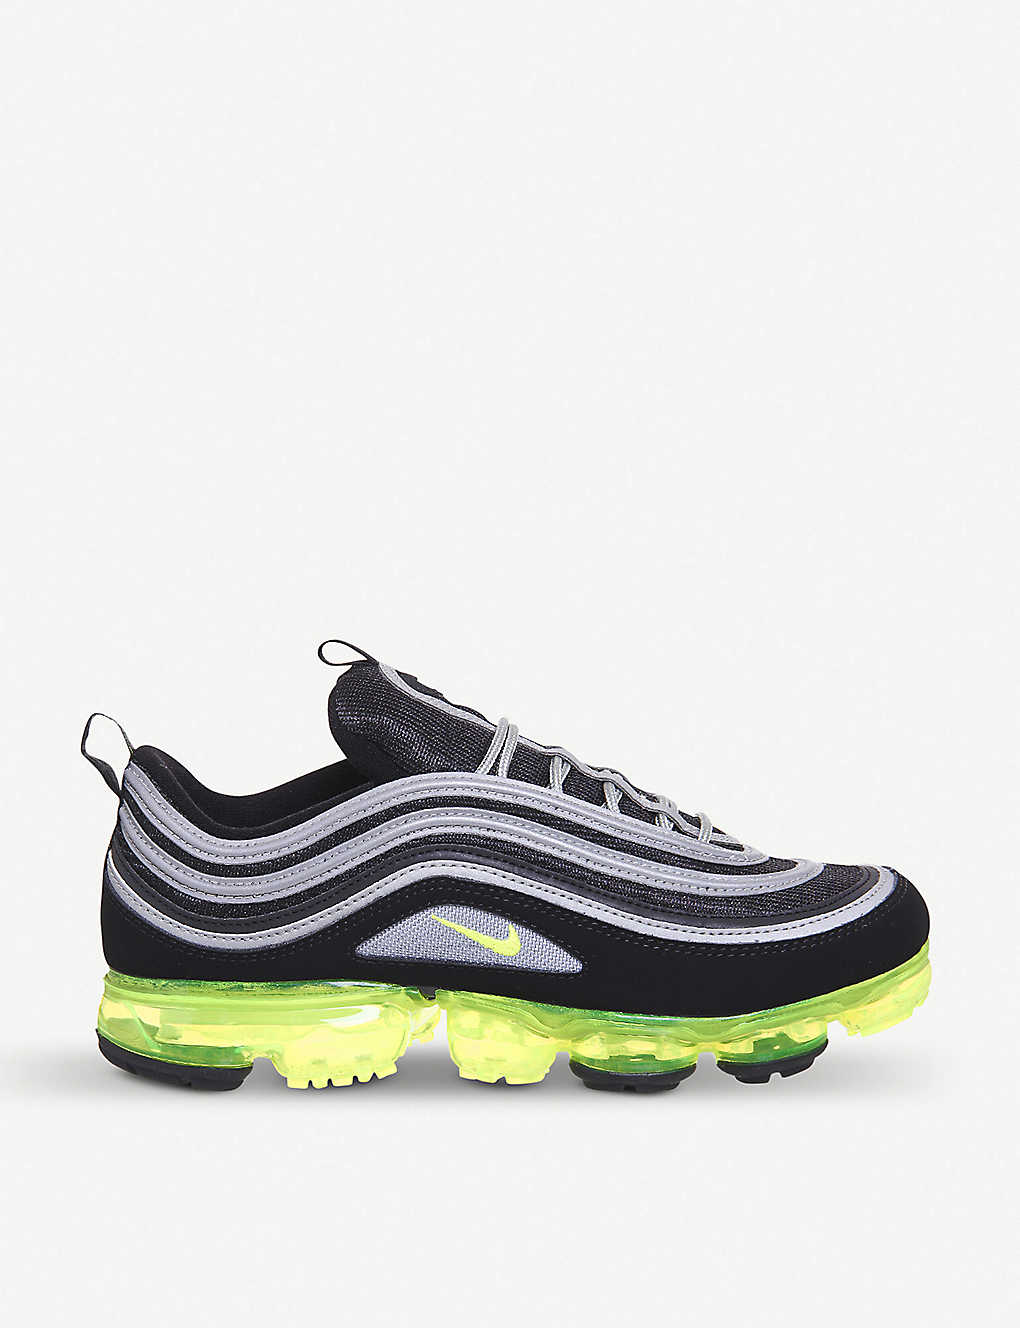 a6cfb6beba0b NIKE - Air Vapormax 97 leather and mesh trainers